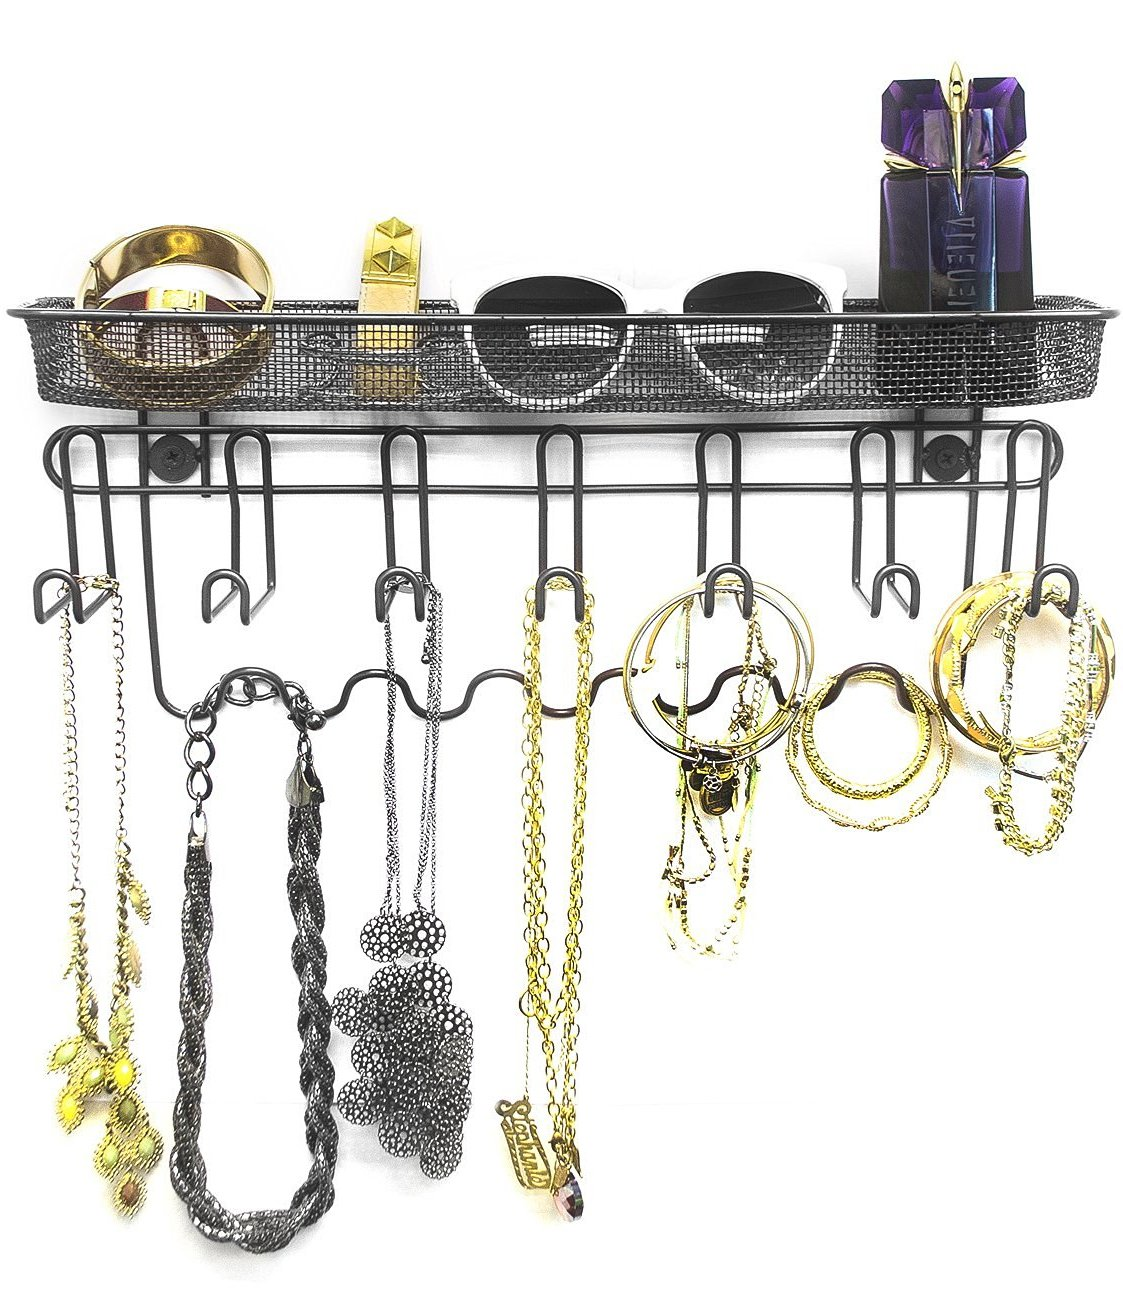 Sorbus Jewelry Organizer Holder, Mail & Key Rack, 13 Hook Wall Mounted Storage Shelf - Perfect for Jewelry, Accessories, Beauty Products, Mail, Keys, and Much More! (Black)